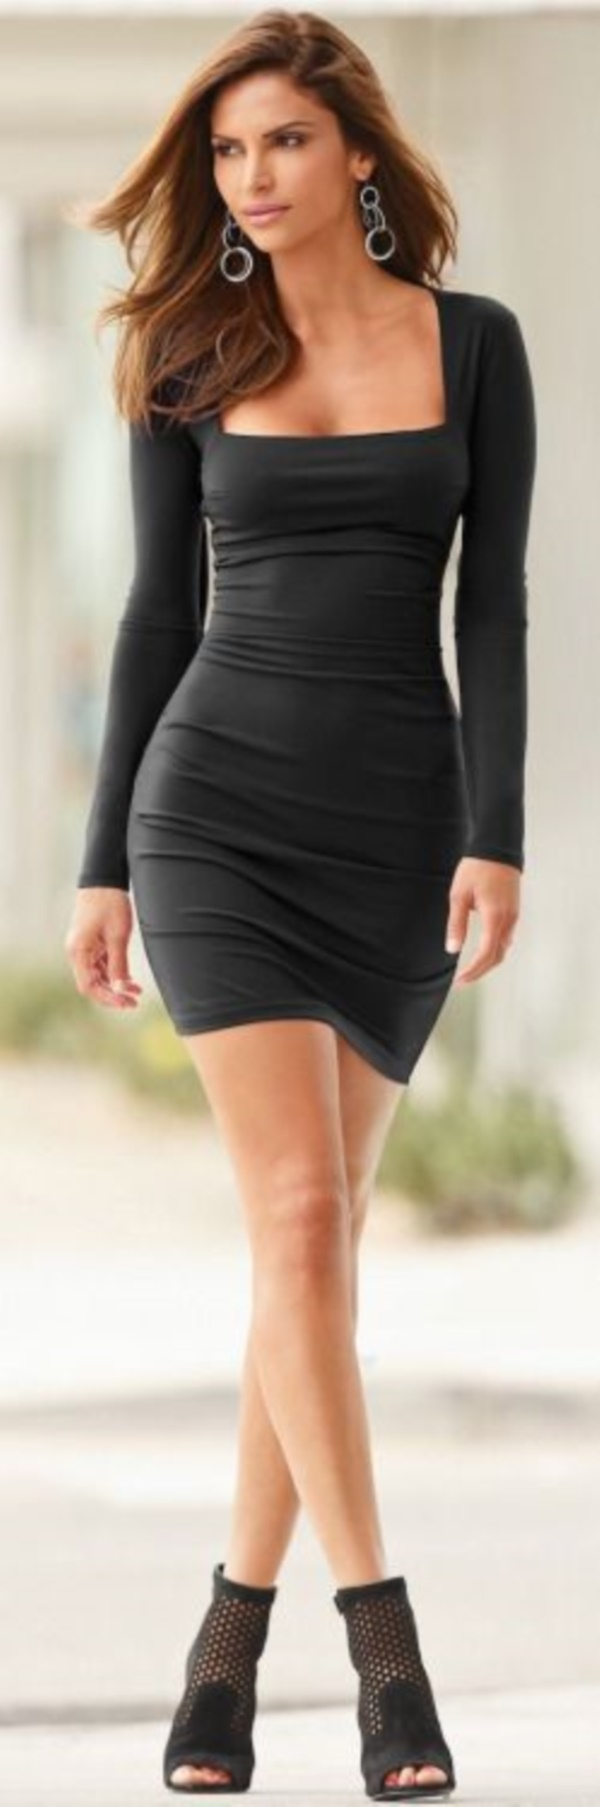 bodycon dress definition (64)